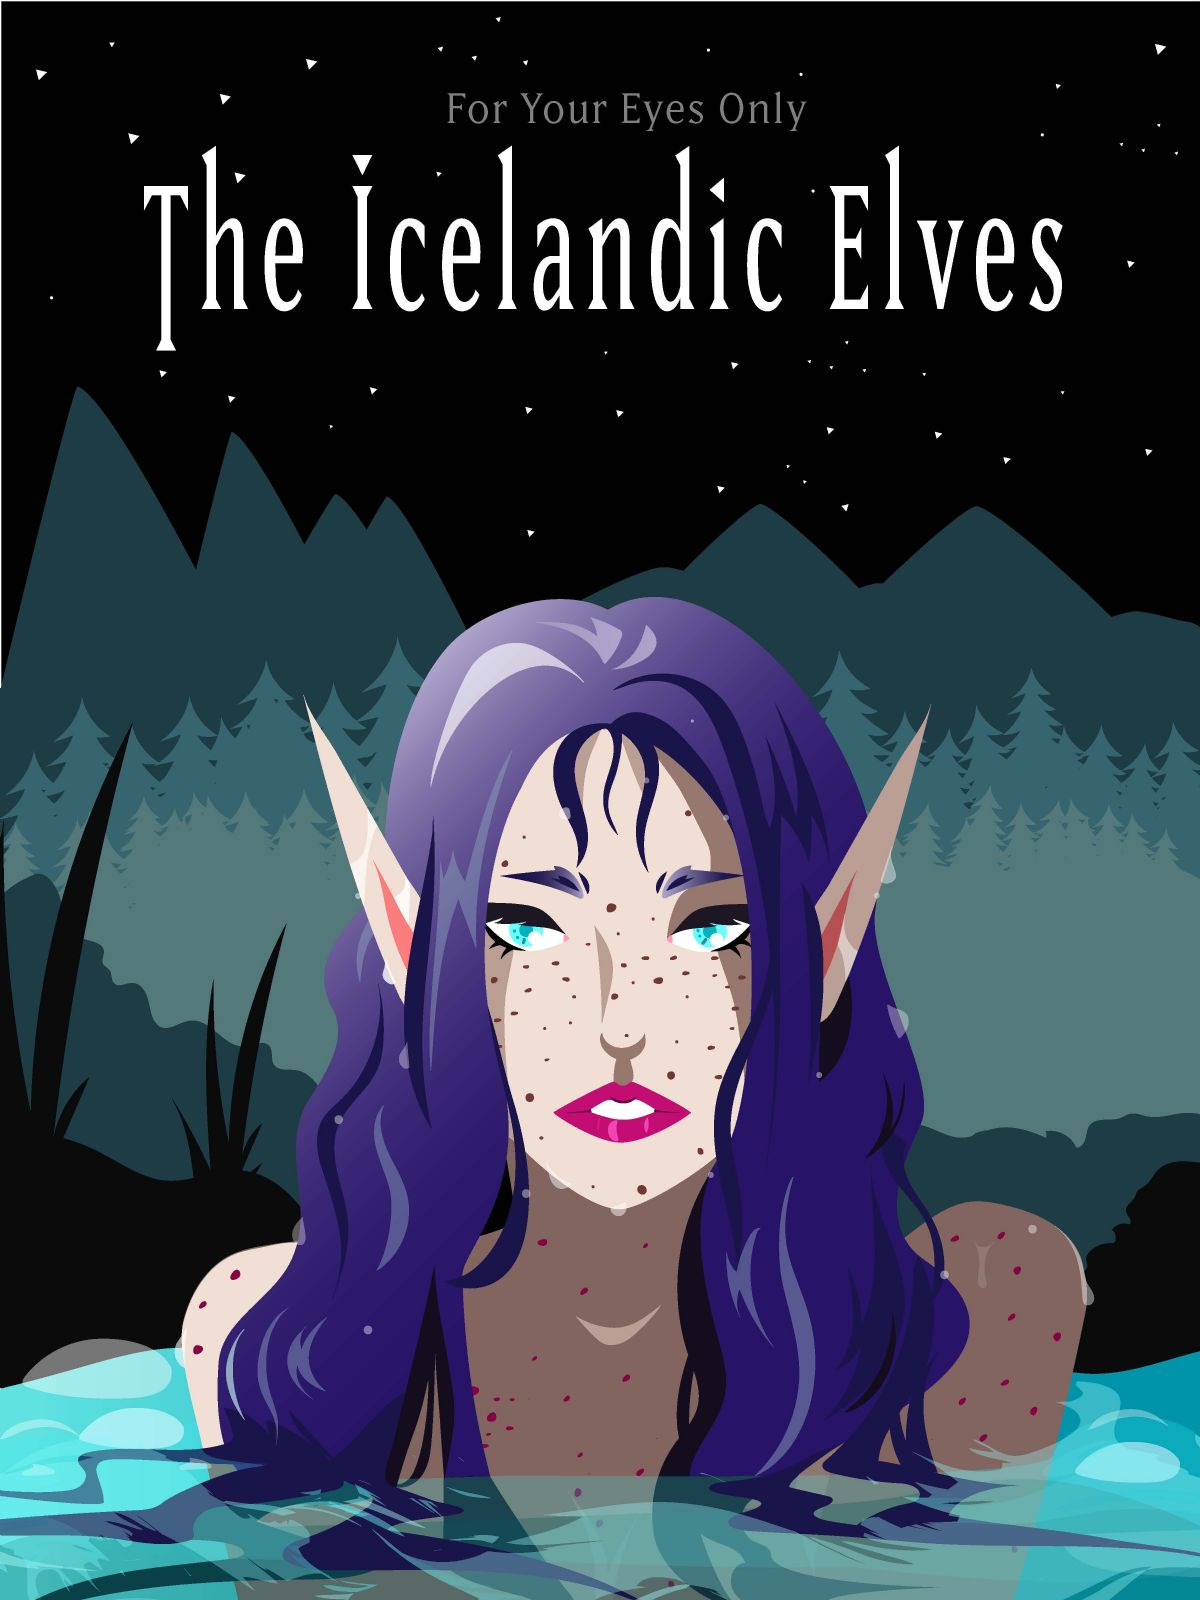 Fardin Zahra - The Icelandic Elves